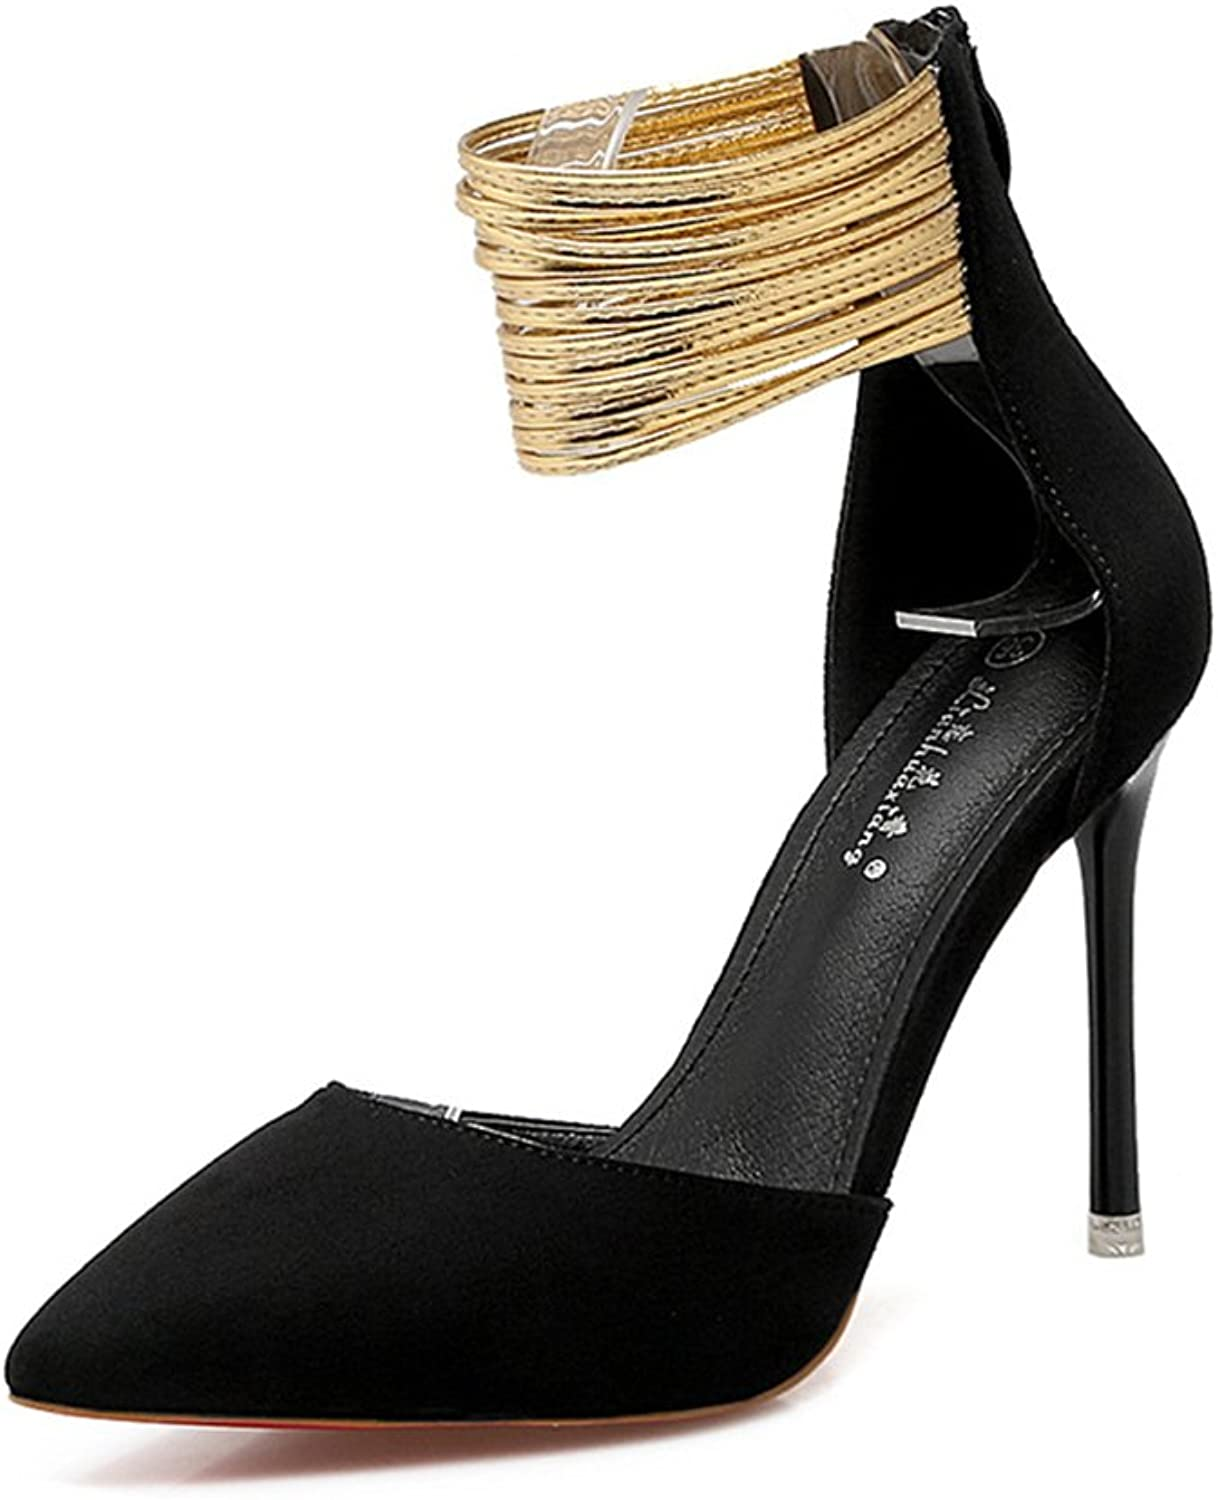 BININBOX Women's Elegant Metal Foot Ring Pointed Stiletto High Heels